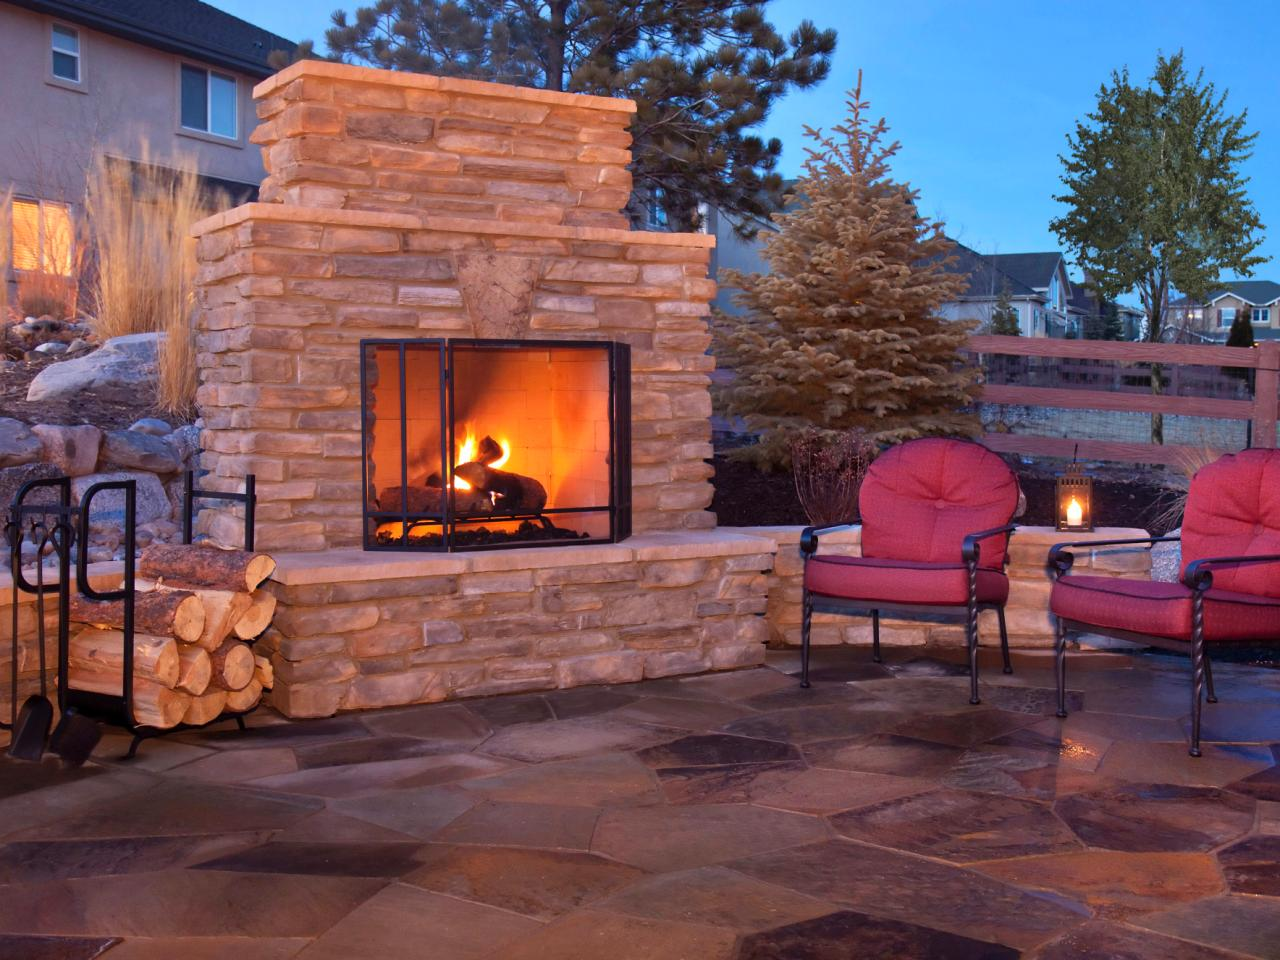 Decorate your garden with a diy outdoor fireplace for Diy outdoor gas fireplace